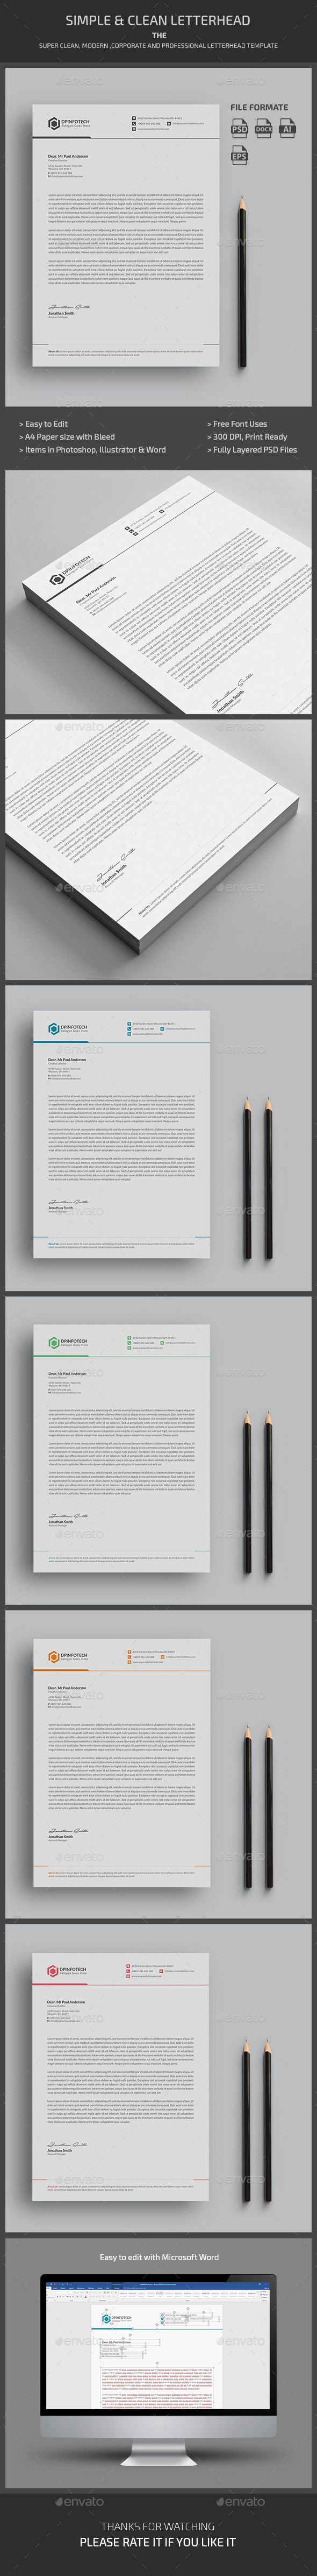 Letterhead This Letterhead is simple and clean, easy to be edited and designed to make such a good impression. Minimalistic approach will highlight the appropriate data in your Letterhead.All elements icons and logo are included as png files as Vector icons set in one Illustrator file.